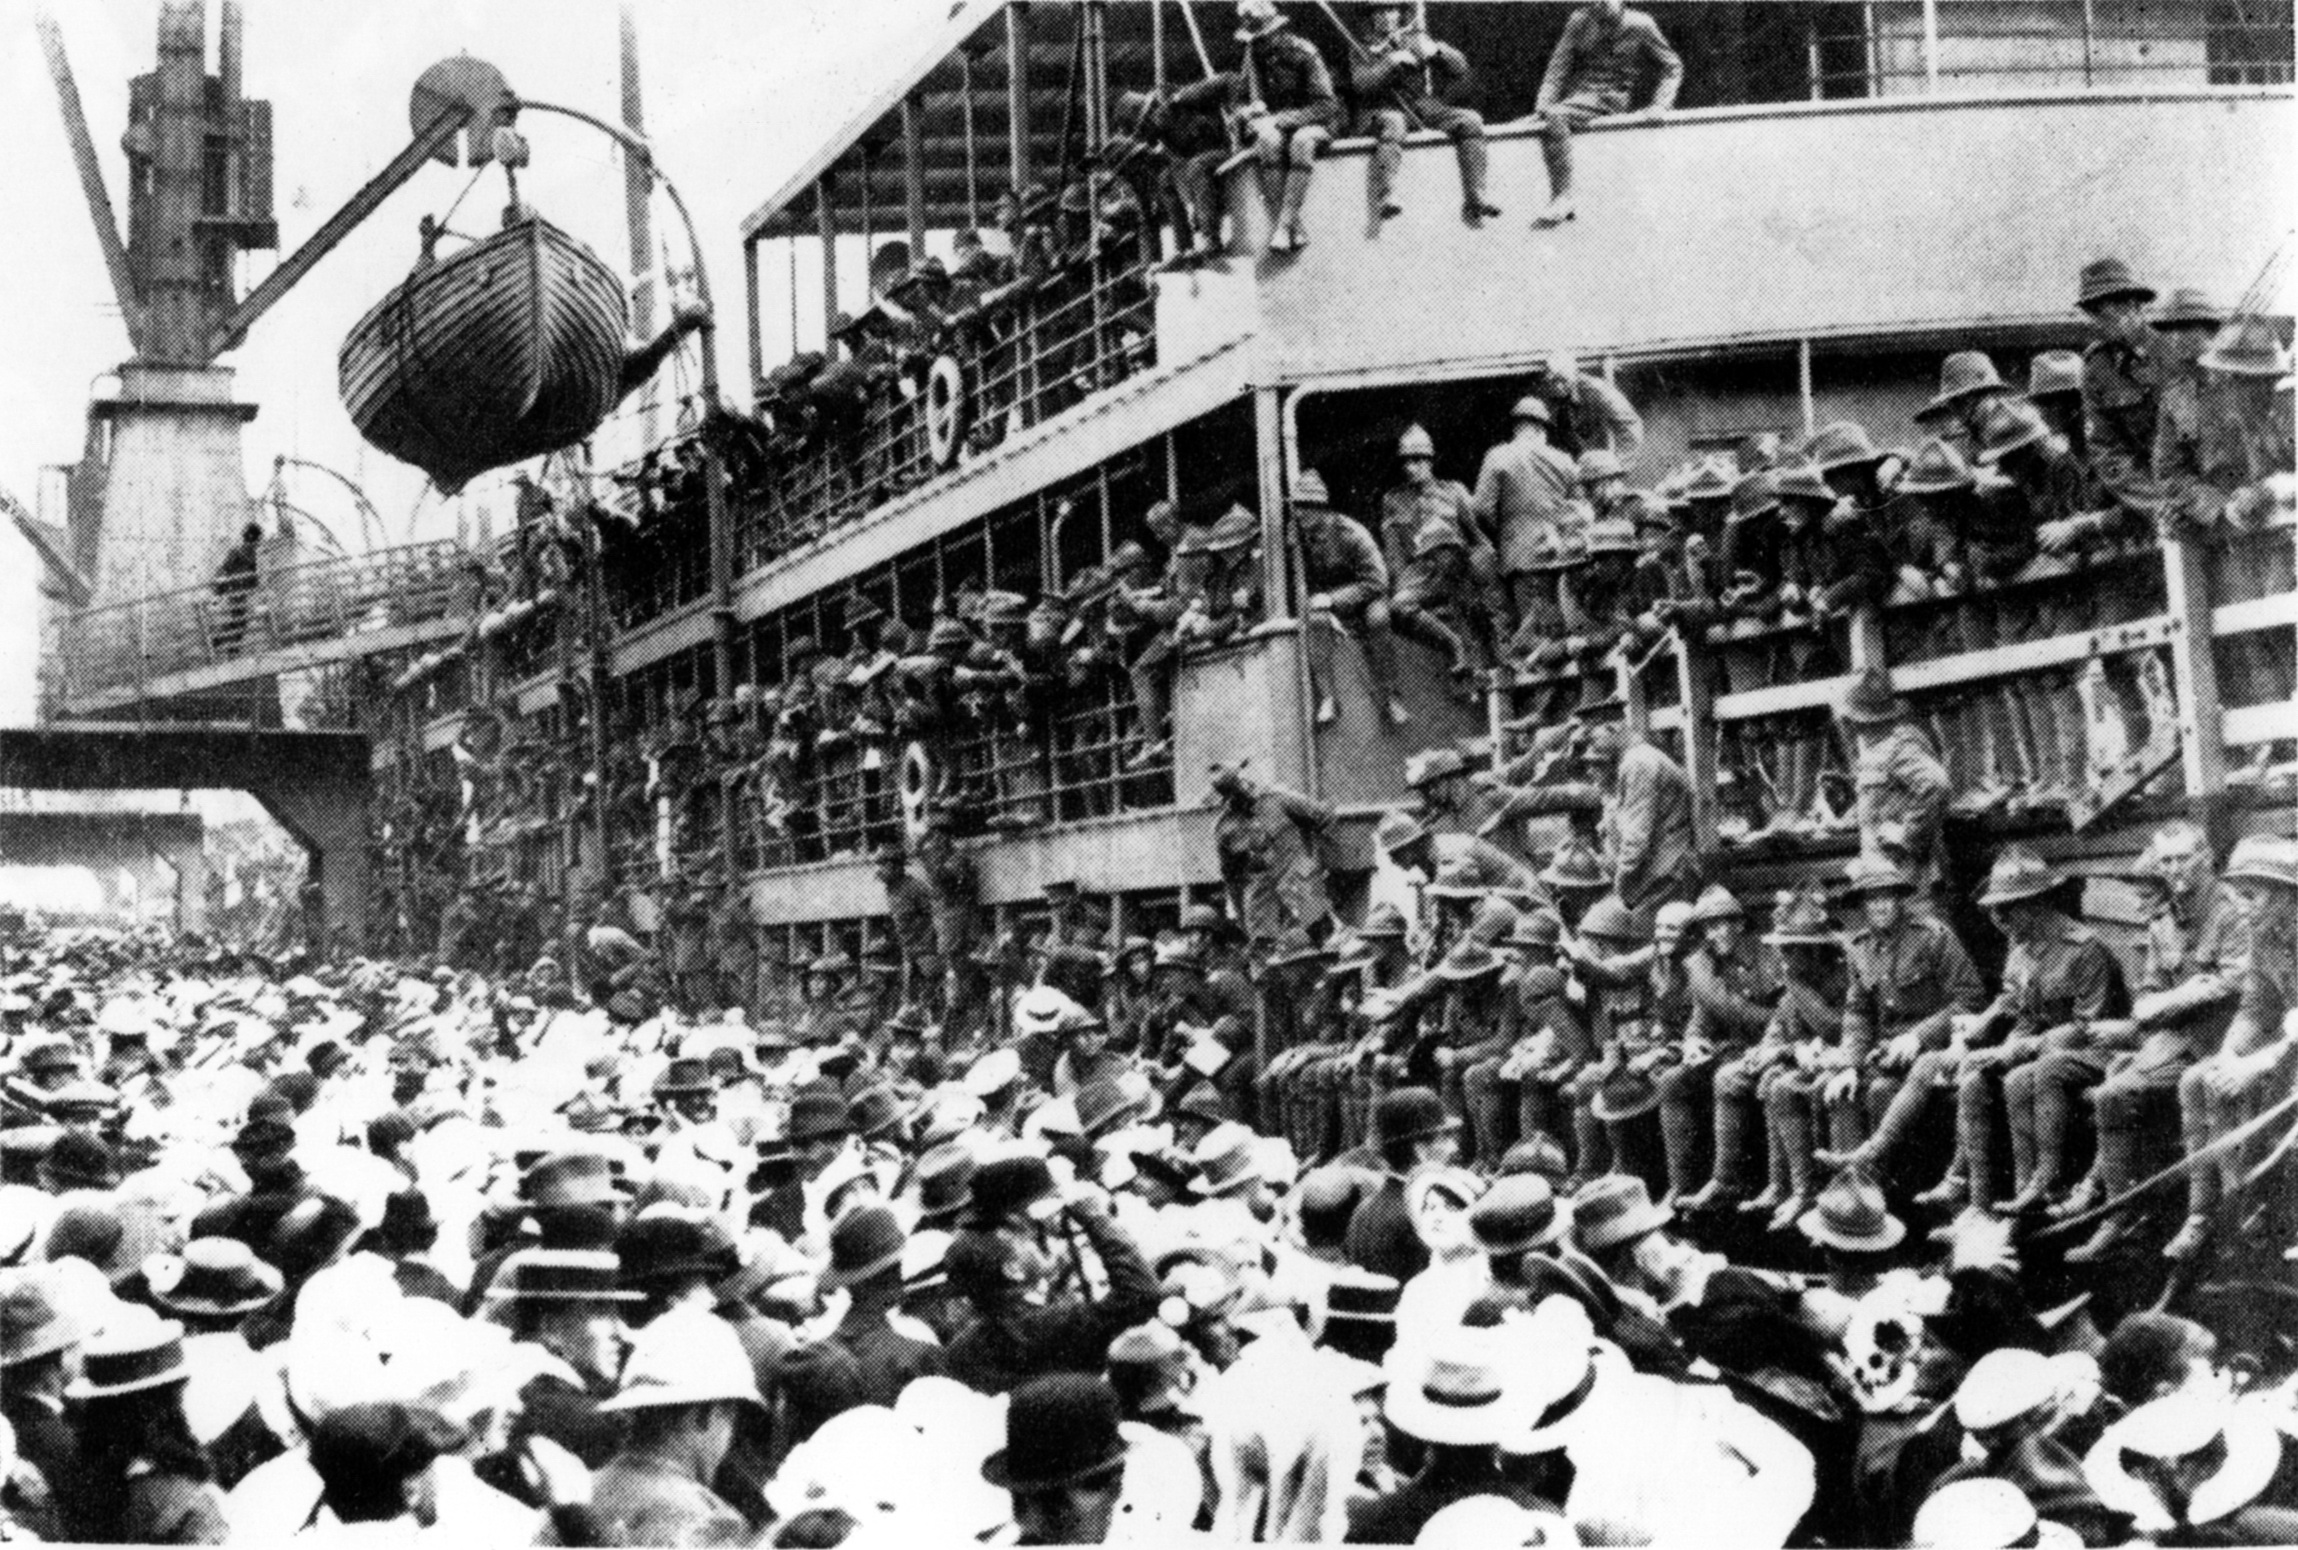 On October 16, 1914, amidst anxious and curious onlookers, the Main Body of the New Zealand Expeditionary Force (NZEF) left Wellington on ten troopships. The 8454 personnel and 3000 horses was the largest body of men (and horses) to leave New Zealand at any one time. Once the soldiers and their equipment were loaded, the troopships made their way across the Tasman to link up with the Australian Imperial Force (AIF) at Albany, Western Australia. The plan was to set out across the Indian Ocean for France, but with Turkey's entrance into the war on November 5, the troops were diverted to Egypt. Less than six months later, they saw their first action at Gallipoli. New Zealand Archives Reference AAME 8106 Box 118/ 11/17/3